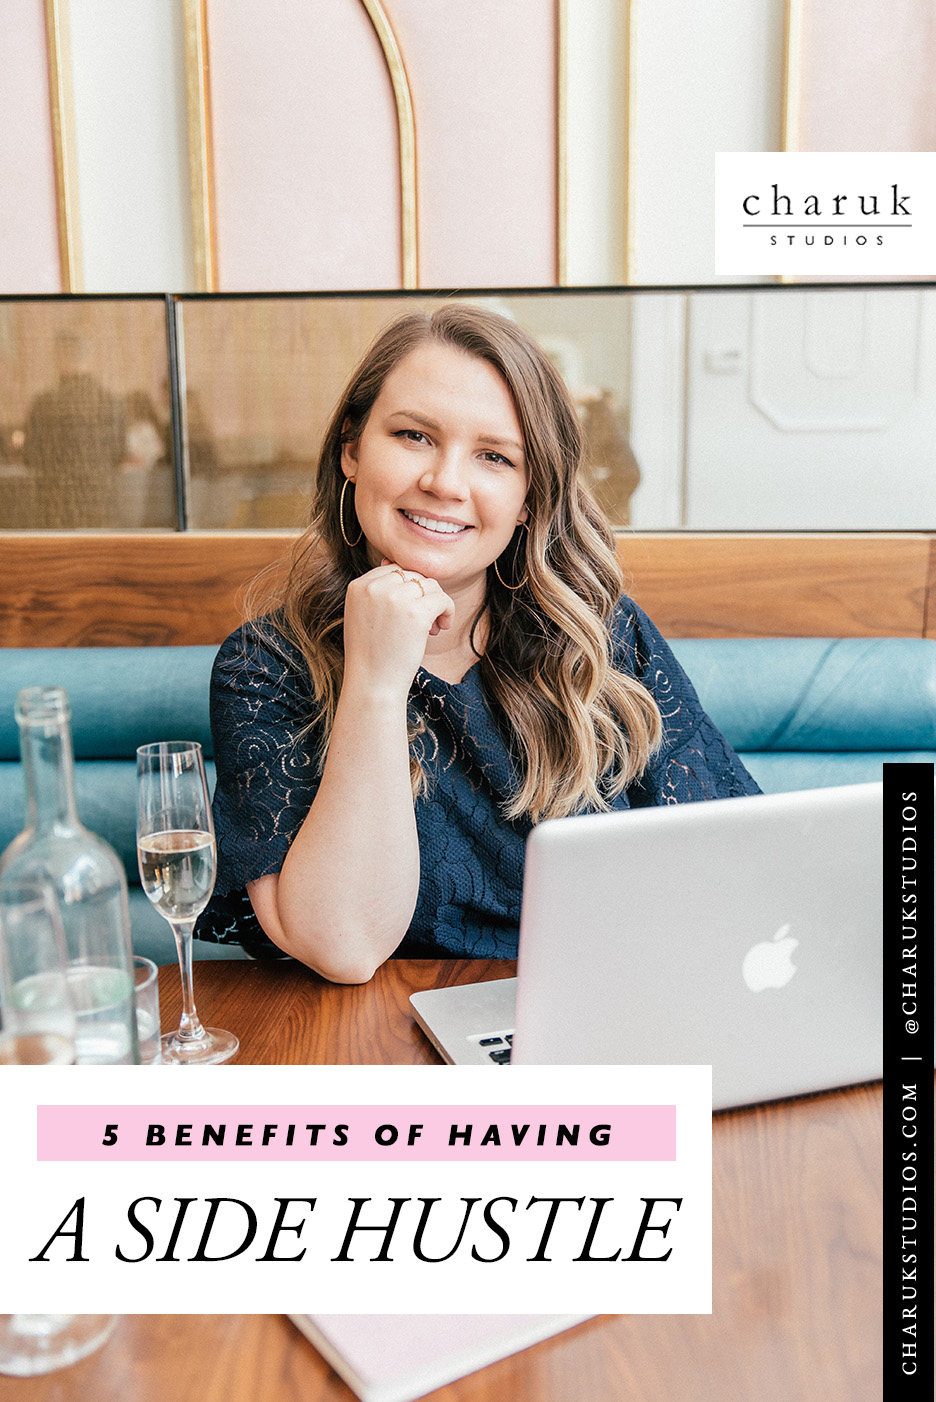 5 Benefits of Having a Side Hustle by Charuk Studios